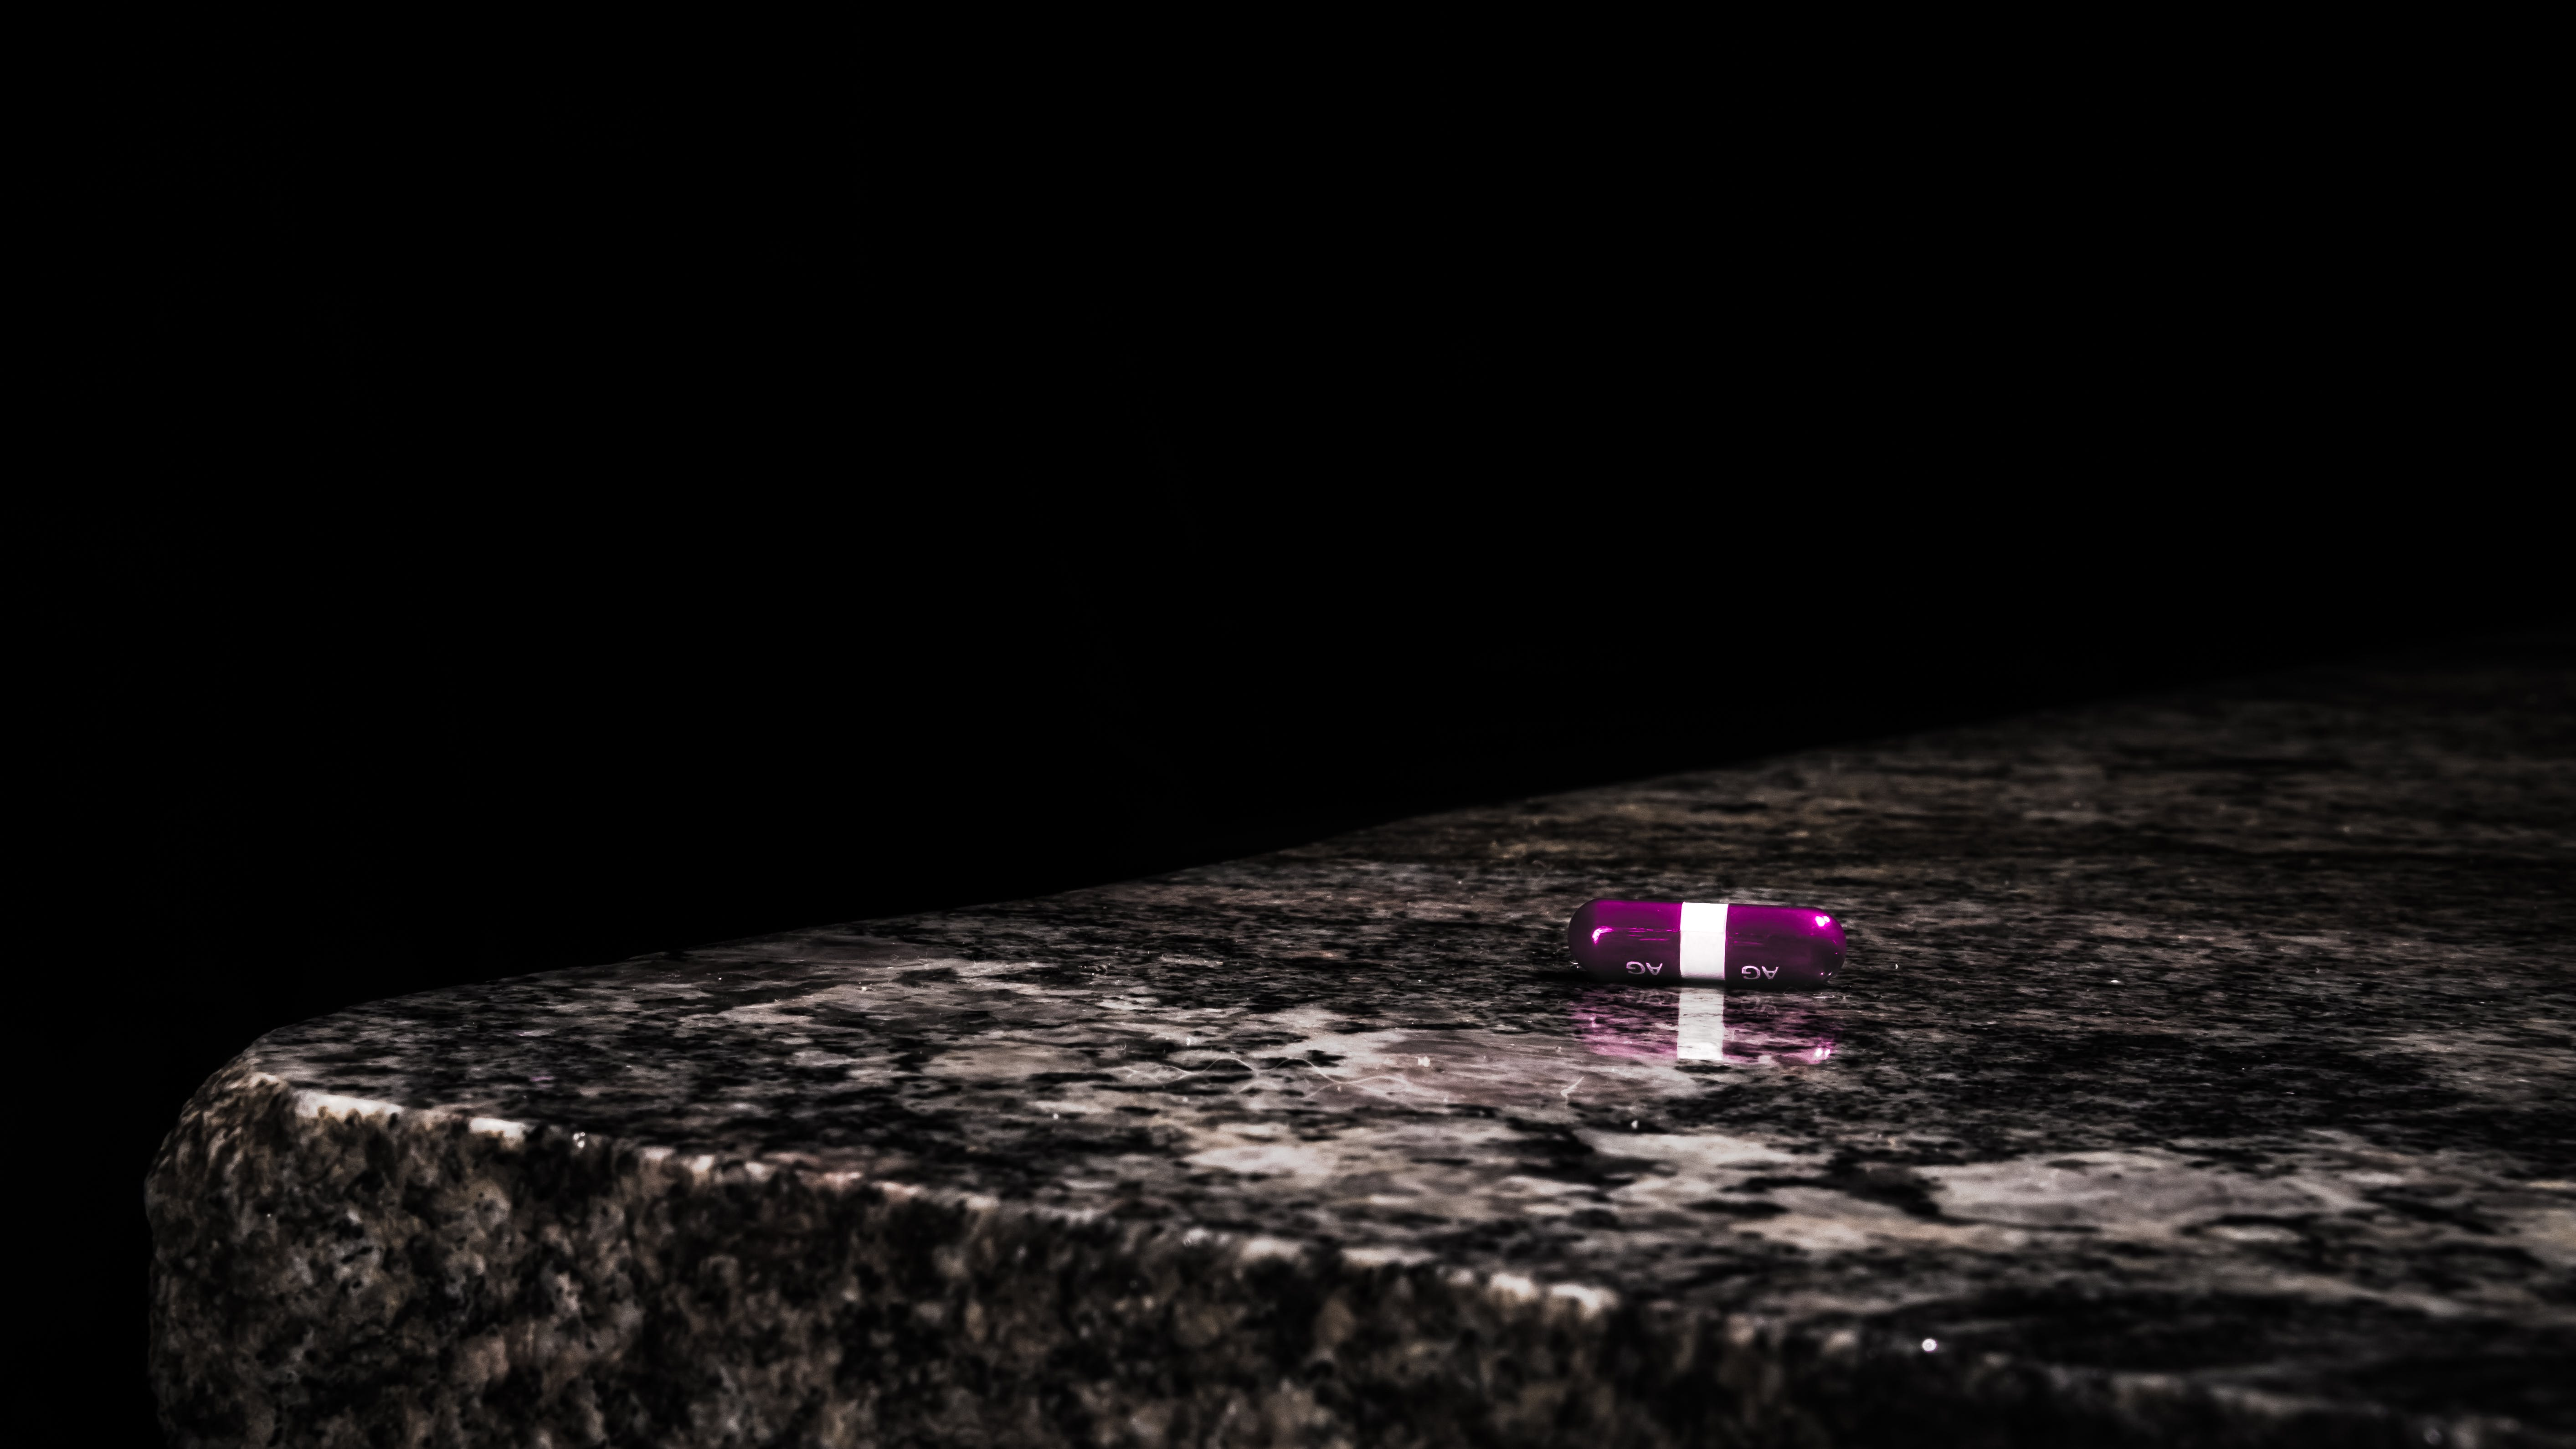 Free stock photo of dark, purple, table, black